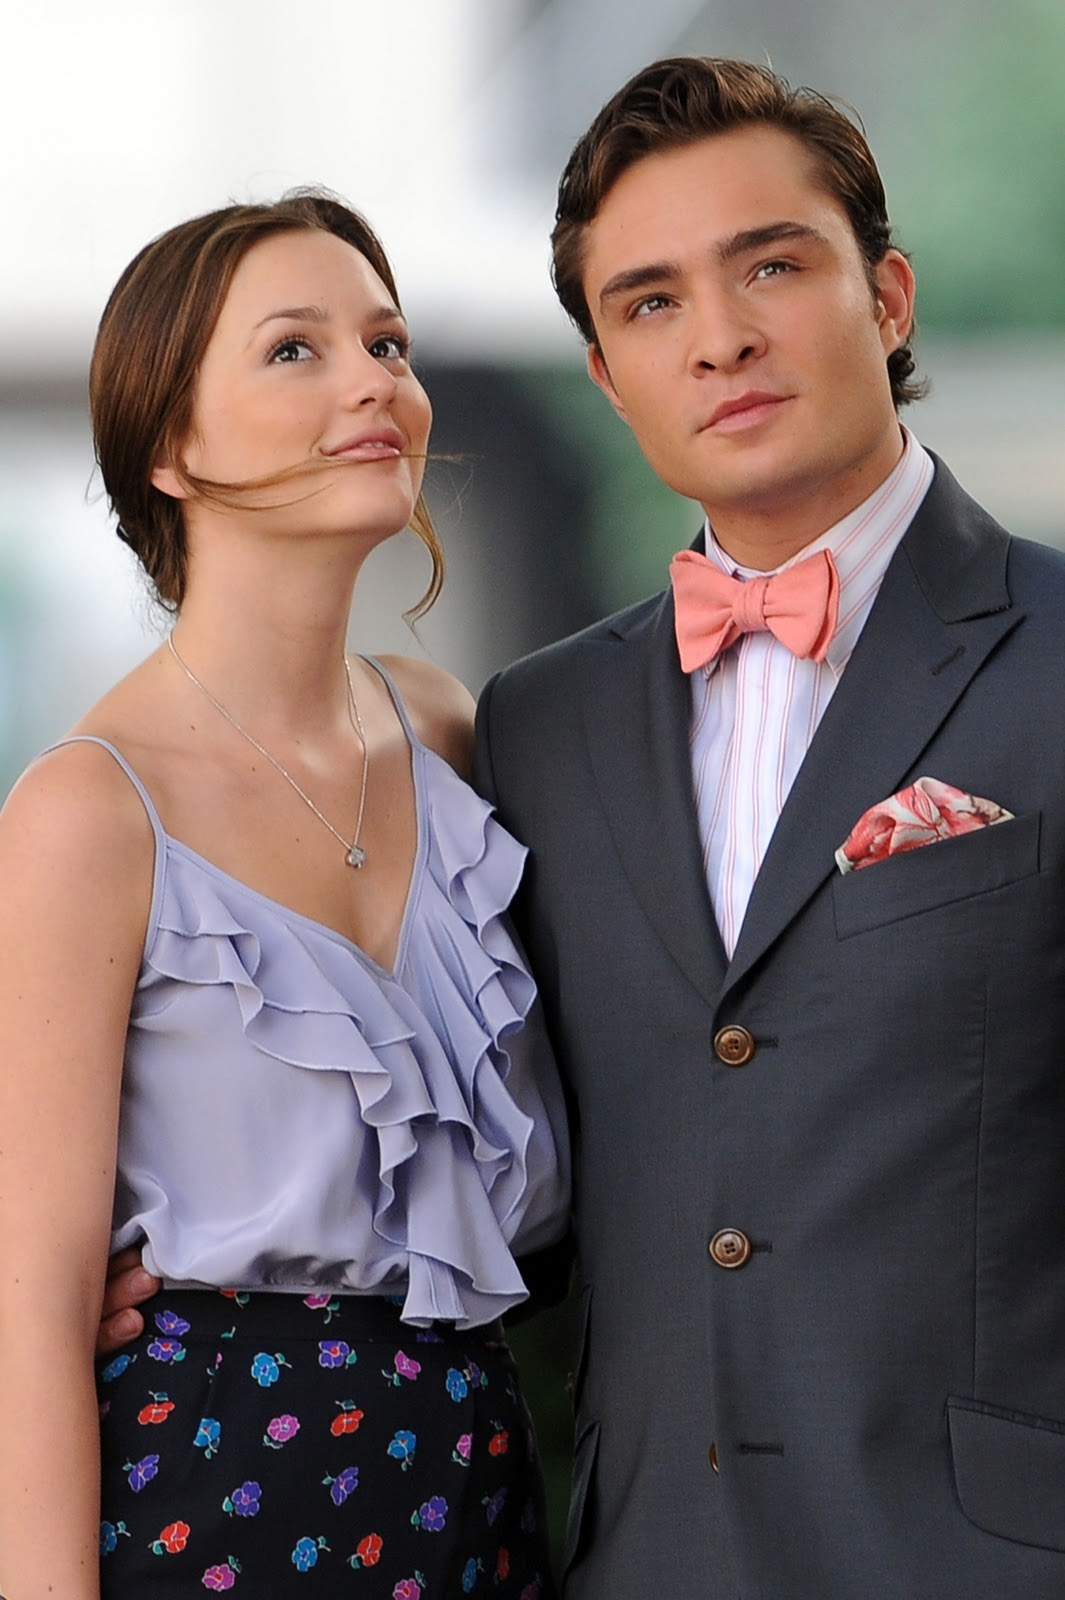 Ed Westwick And Leighton Meester In Formal Wear Blair And Chuck